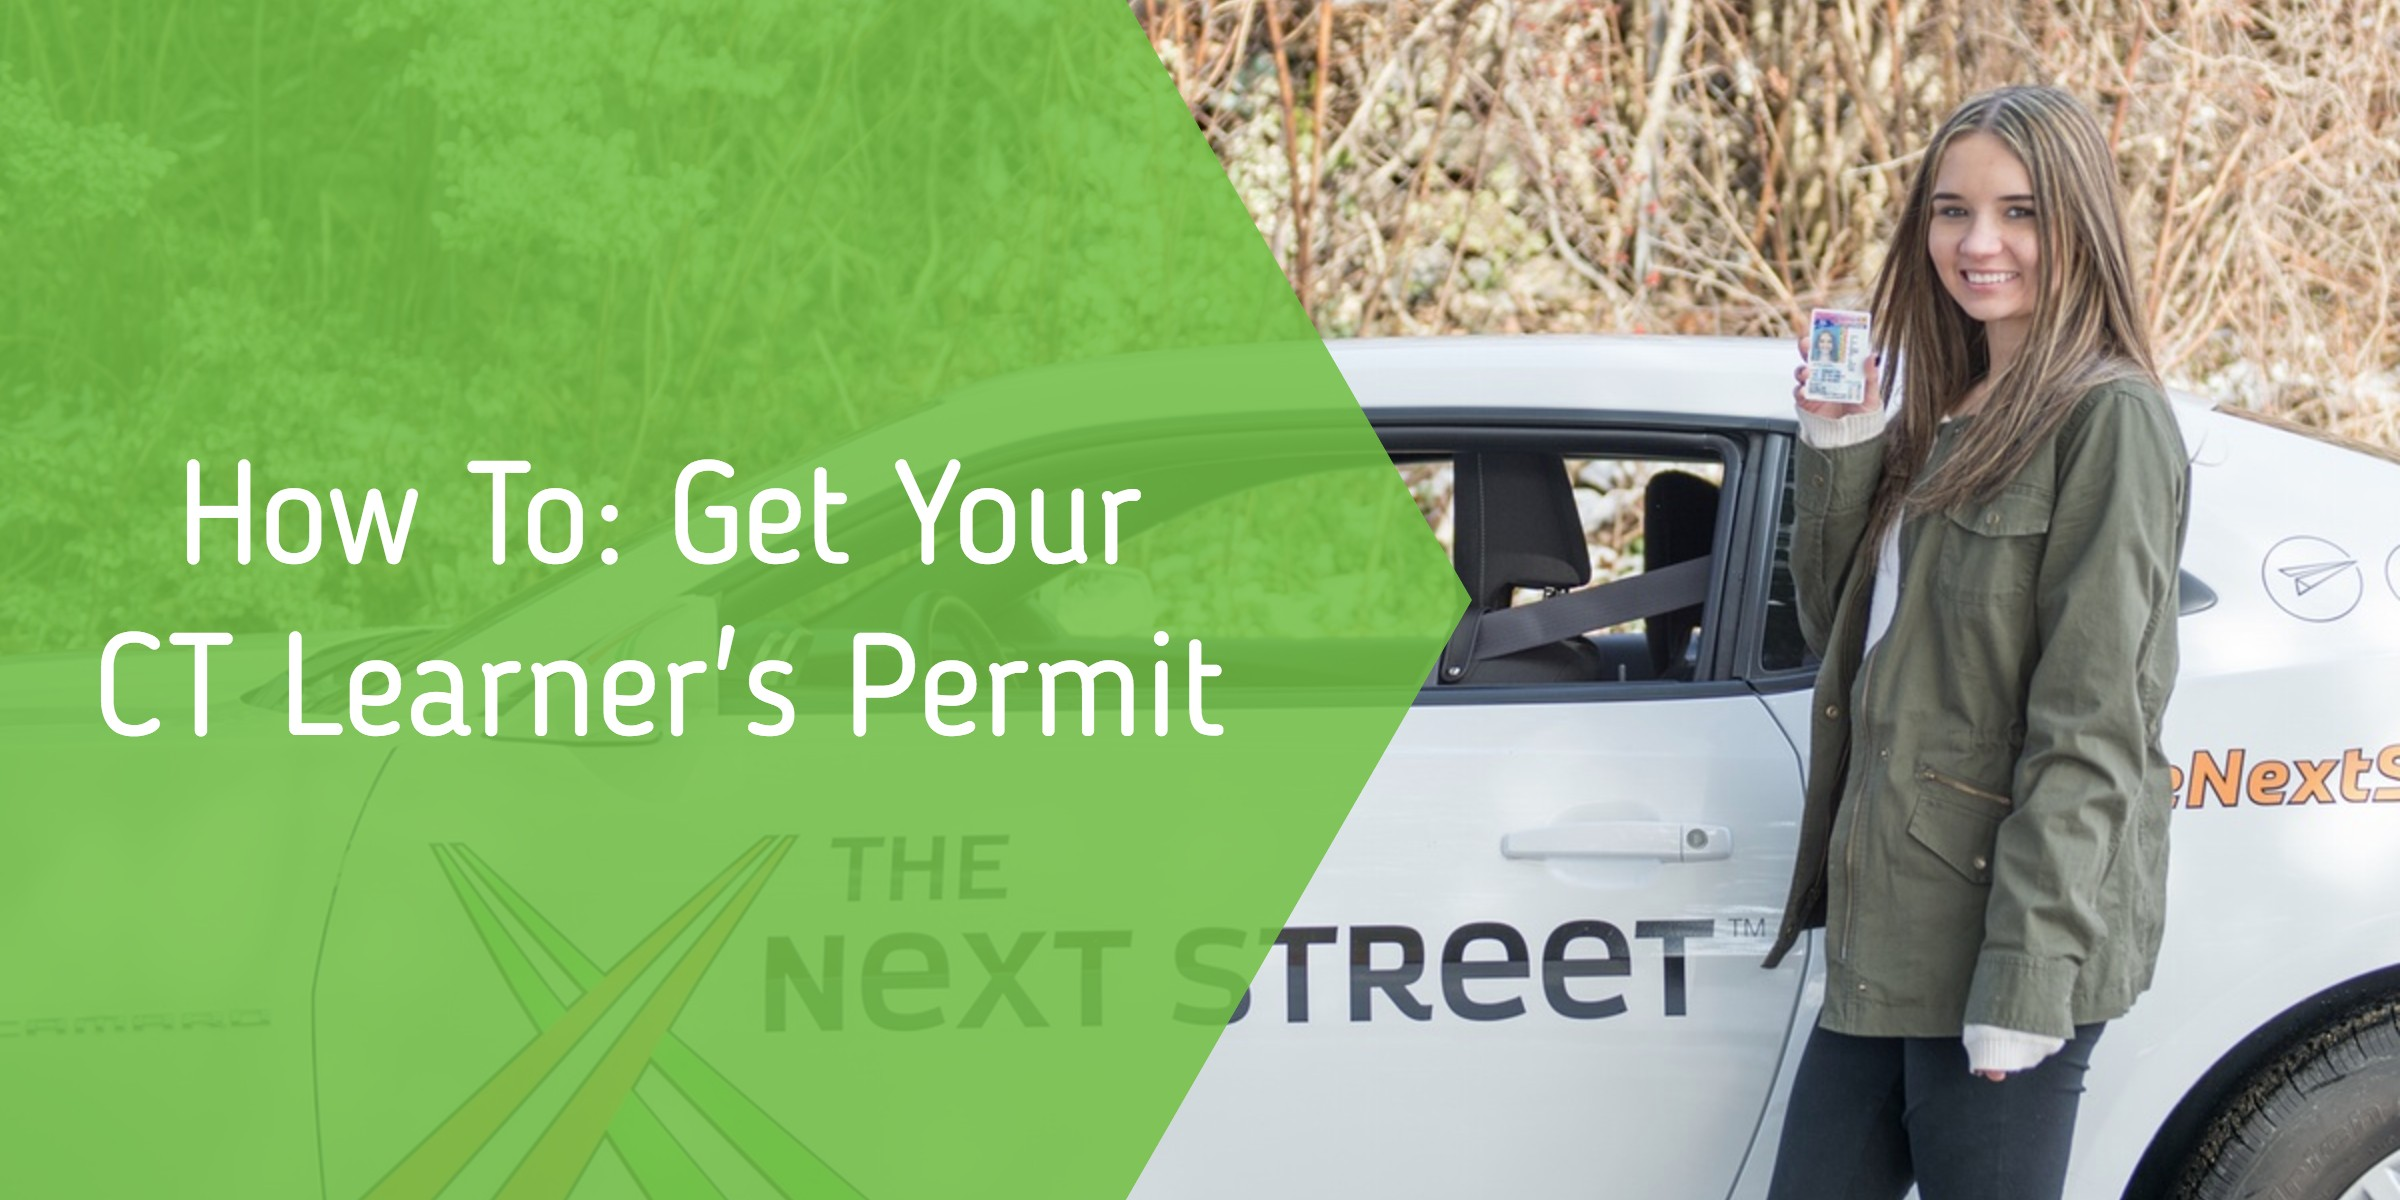 Title_How_To_Get_Your_CT_Learners_Permit.jpg